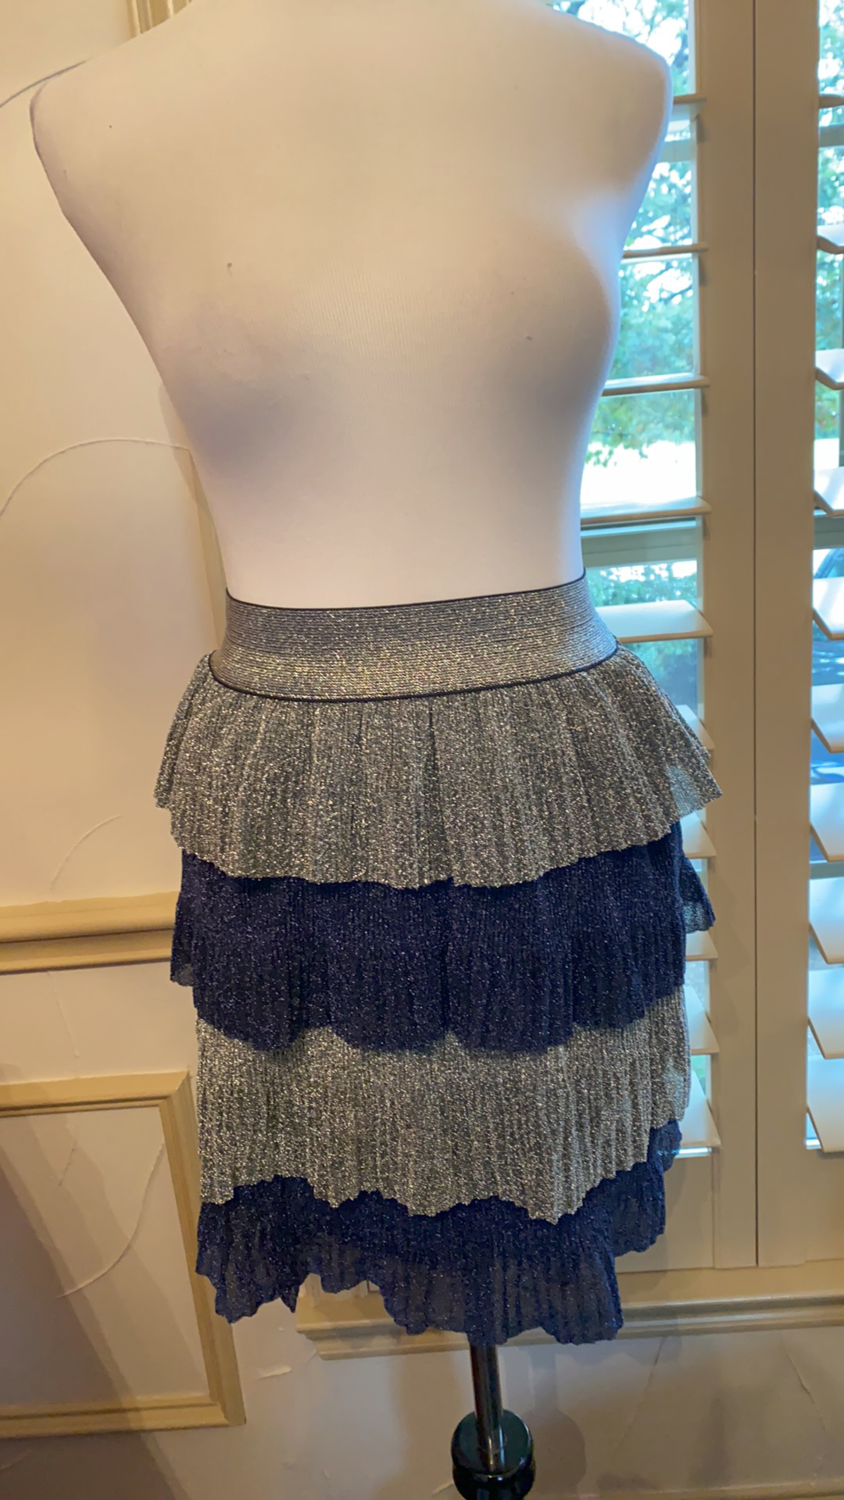 ONLY ONE Short midnight blue and silver skirt